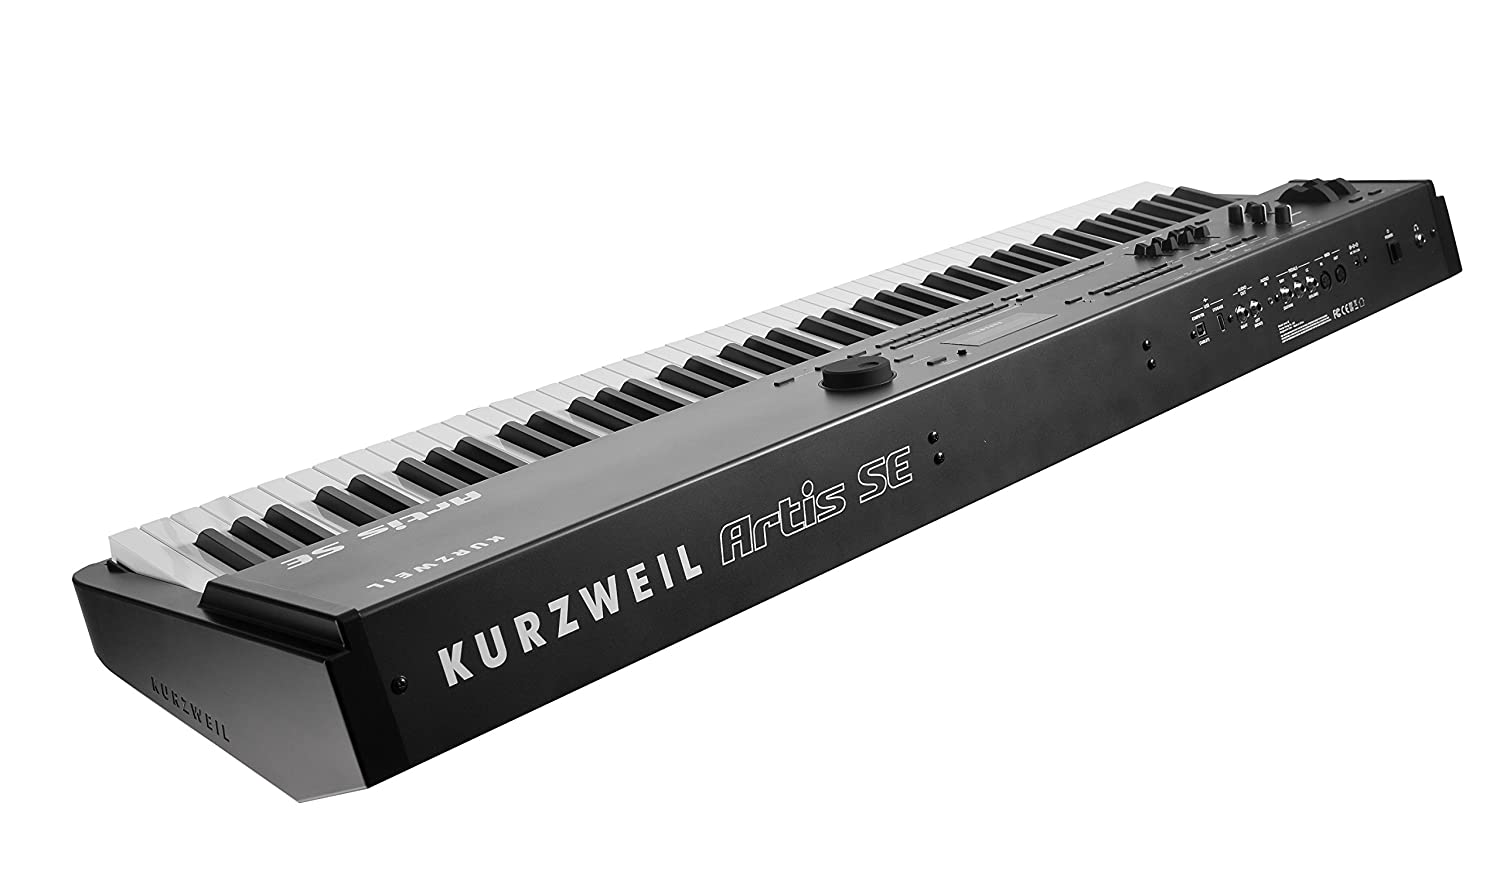 Kurzweil Artis SE 88-Note Piano de escenario: Amazon.es ...